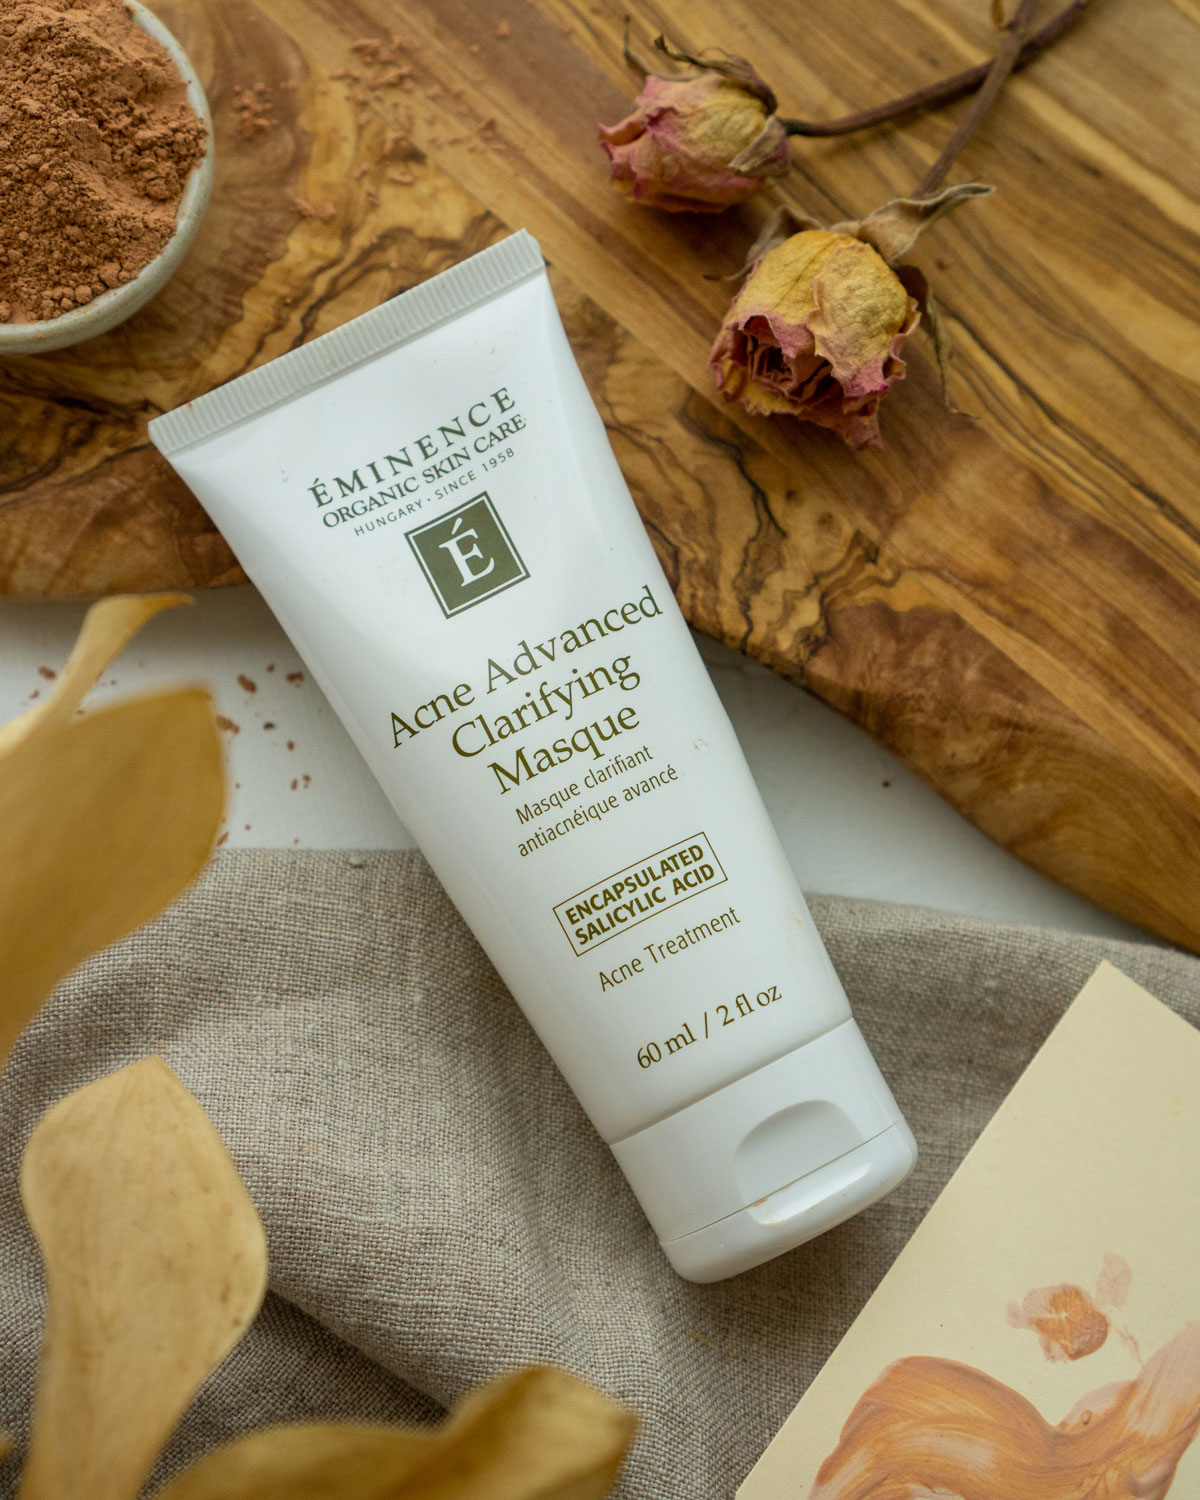 Acne advanced clarifying masque is a great choice for an at-home facial